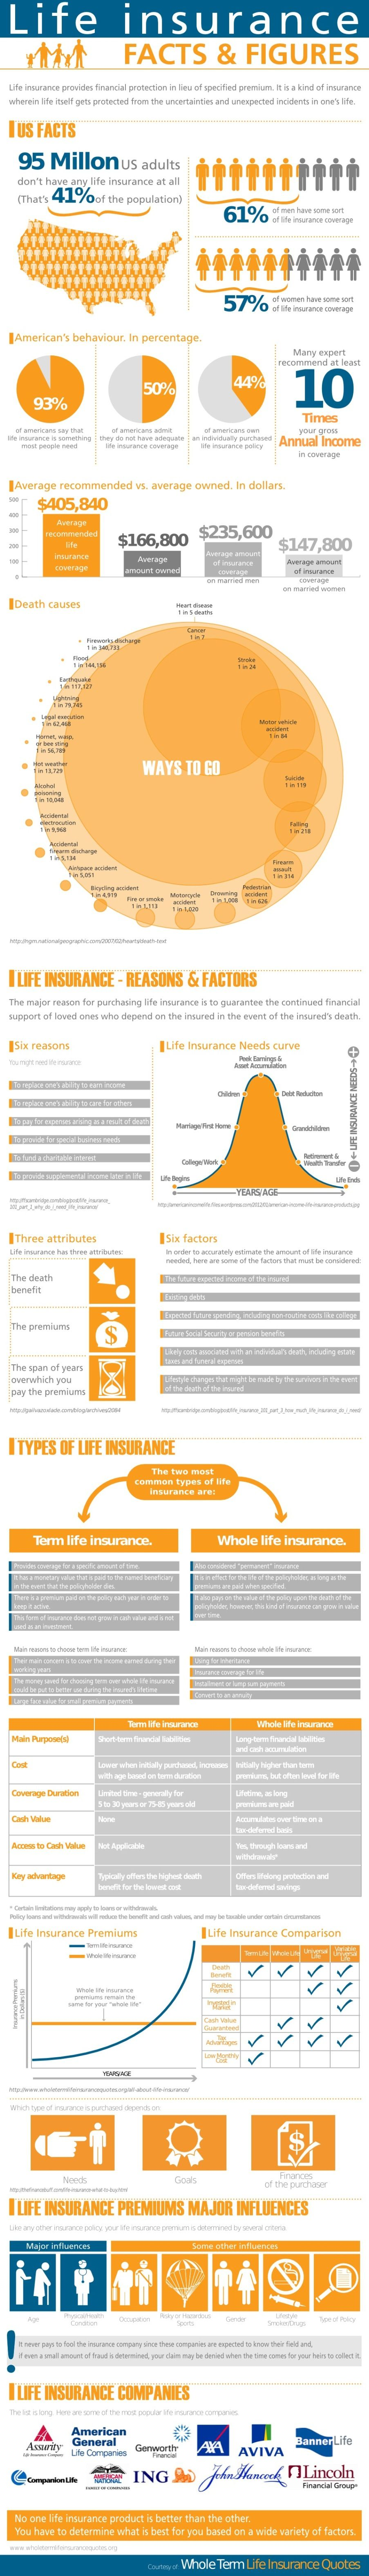 life insurance facts and figures 1 Whole life insurance